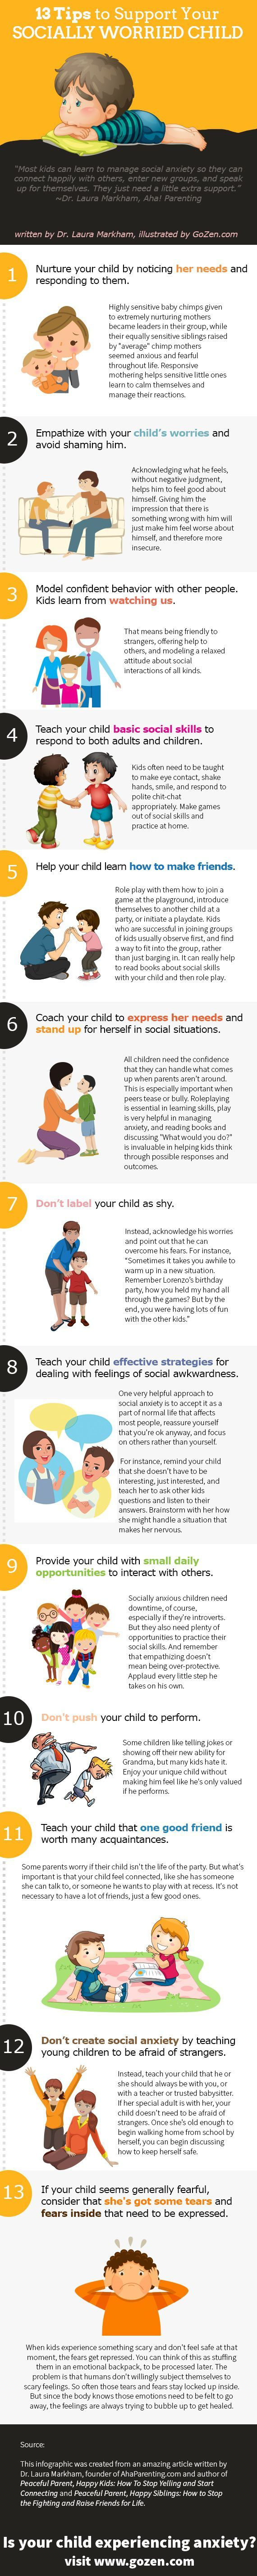 Some good tips! Worked for me so far!